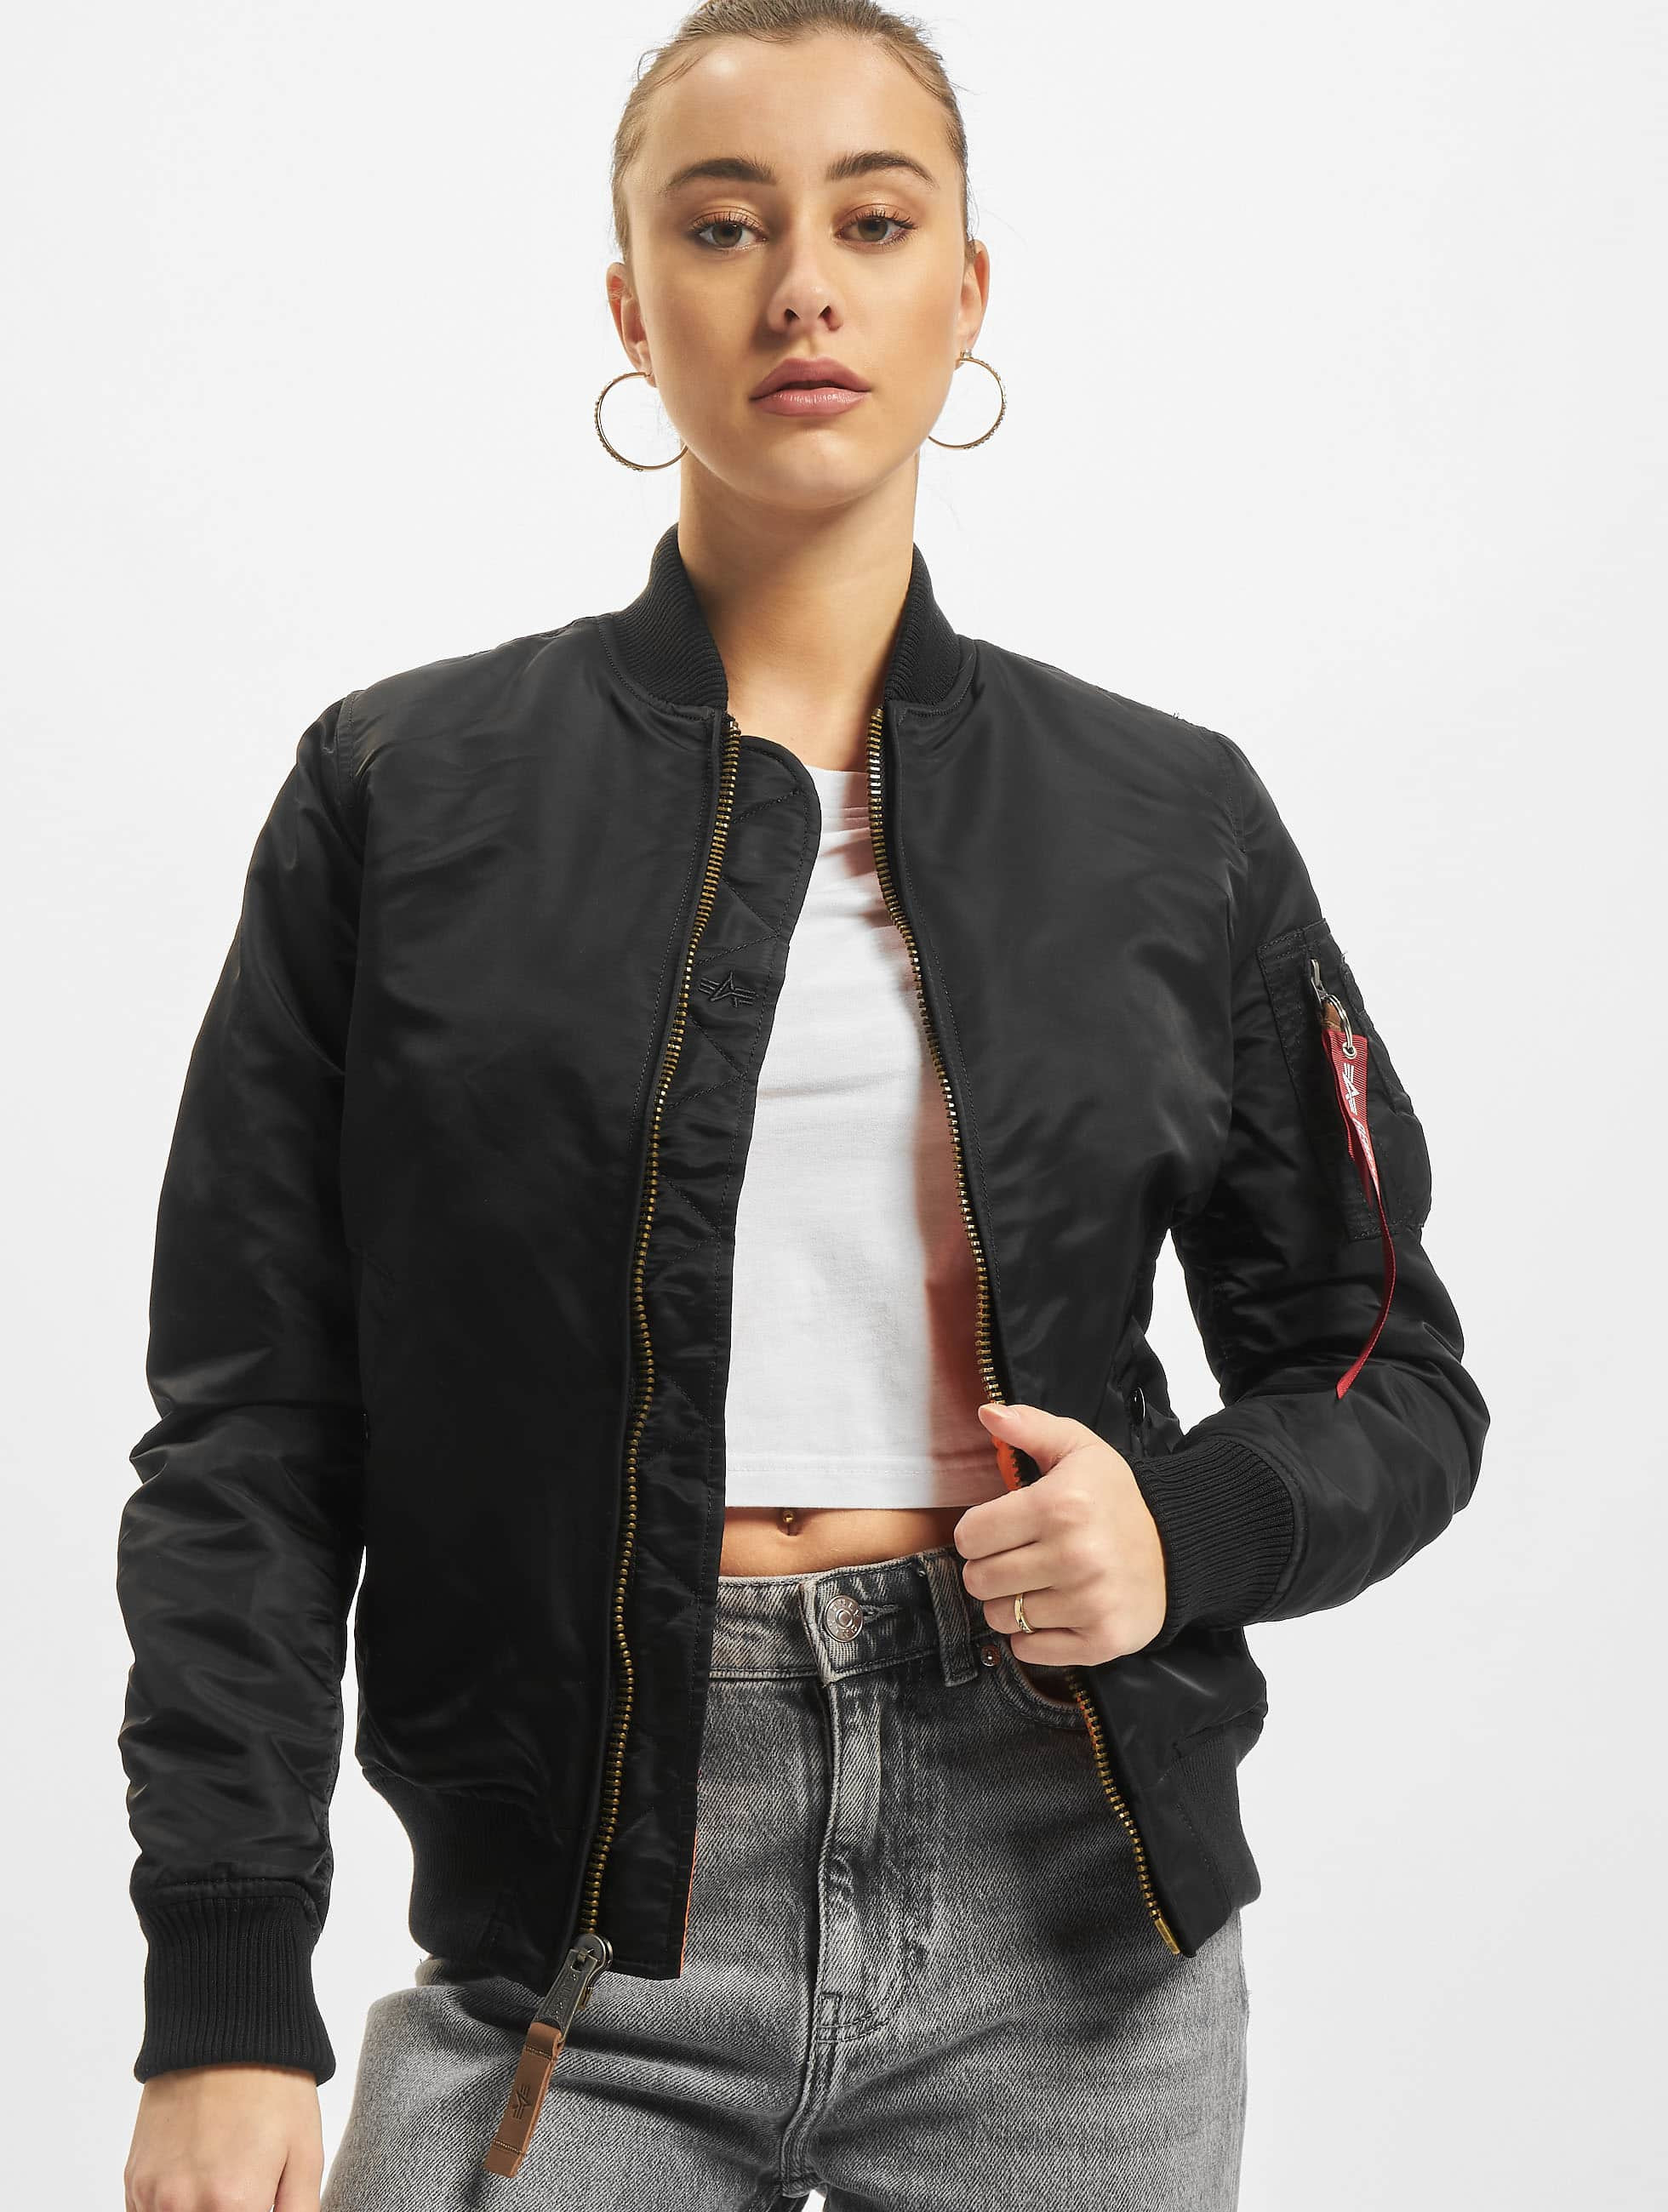 alpha industries damen jacken bomberjacke ma 1 vf 59 ebay. Black Bedroom Furniture Sets. Home Design Ideas